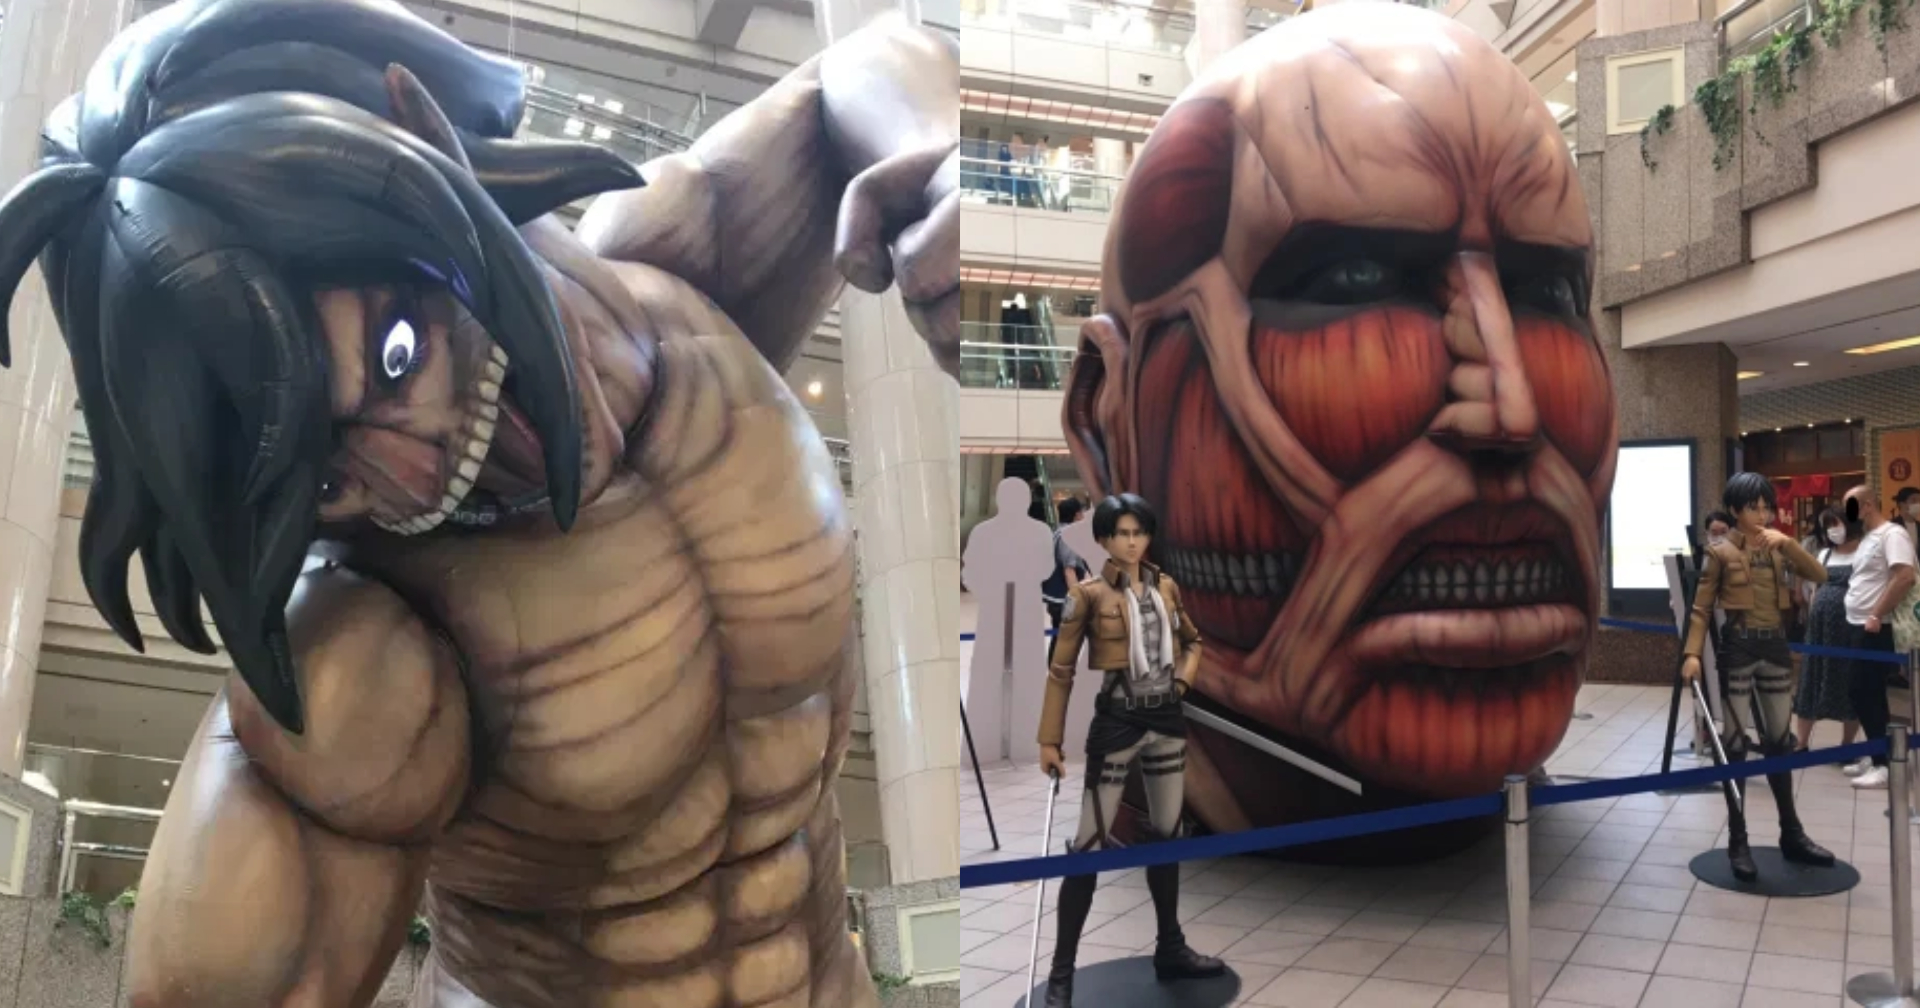 Attack on Titan Statues at a Shopping Mall